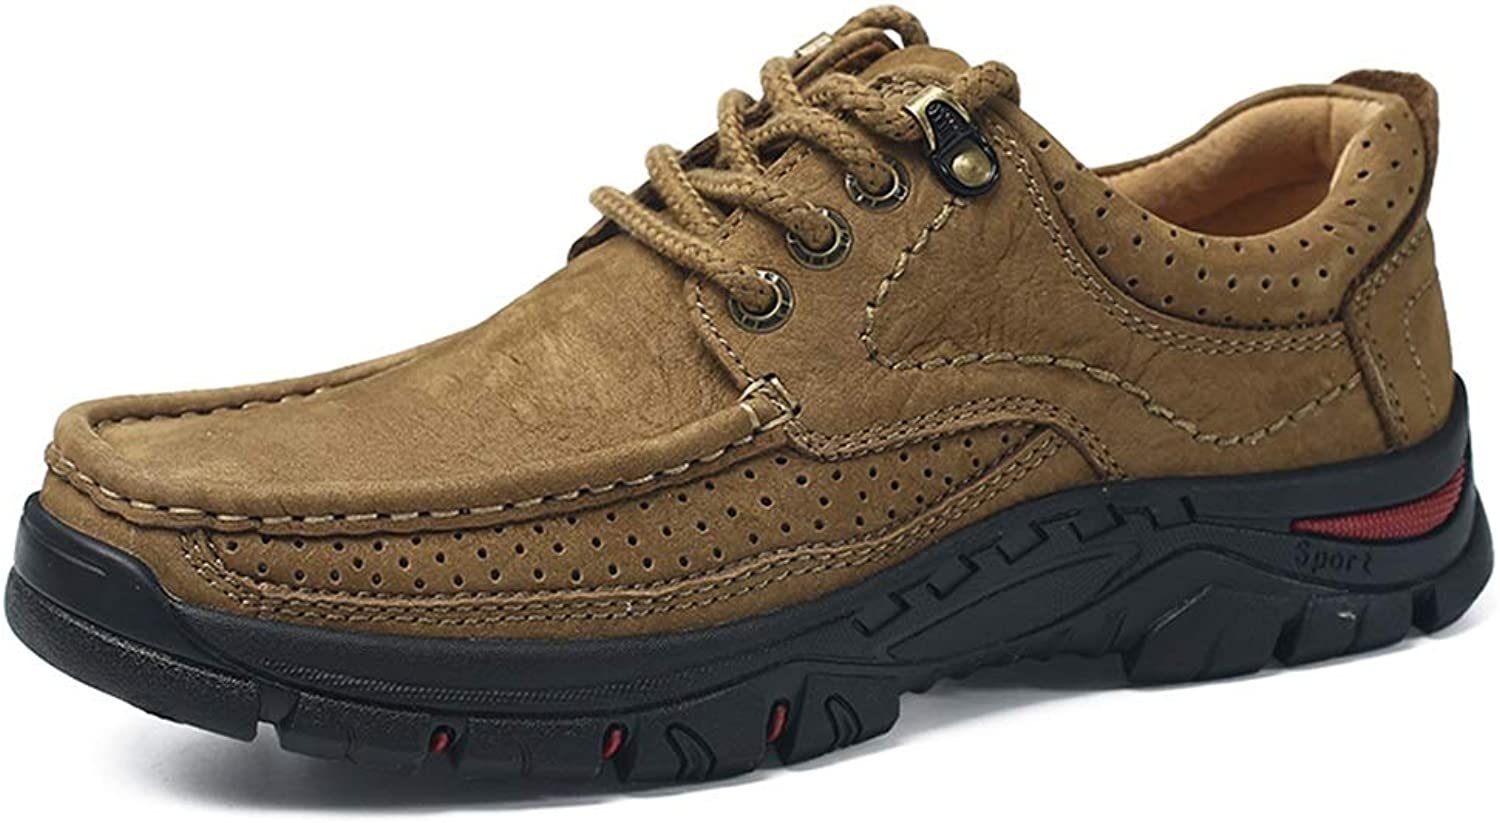 Fashion Sneakers for Men Walking Hiking shoes Lace Up Casual Slip On Round Toe Anti-Slip Leather Upper Outdoor Trekking shoes Wear Resistant (color   Khaki-Lace Up, Size   9.5 D(M) US)